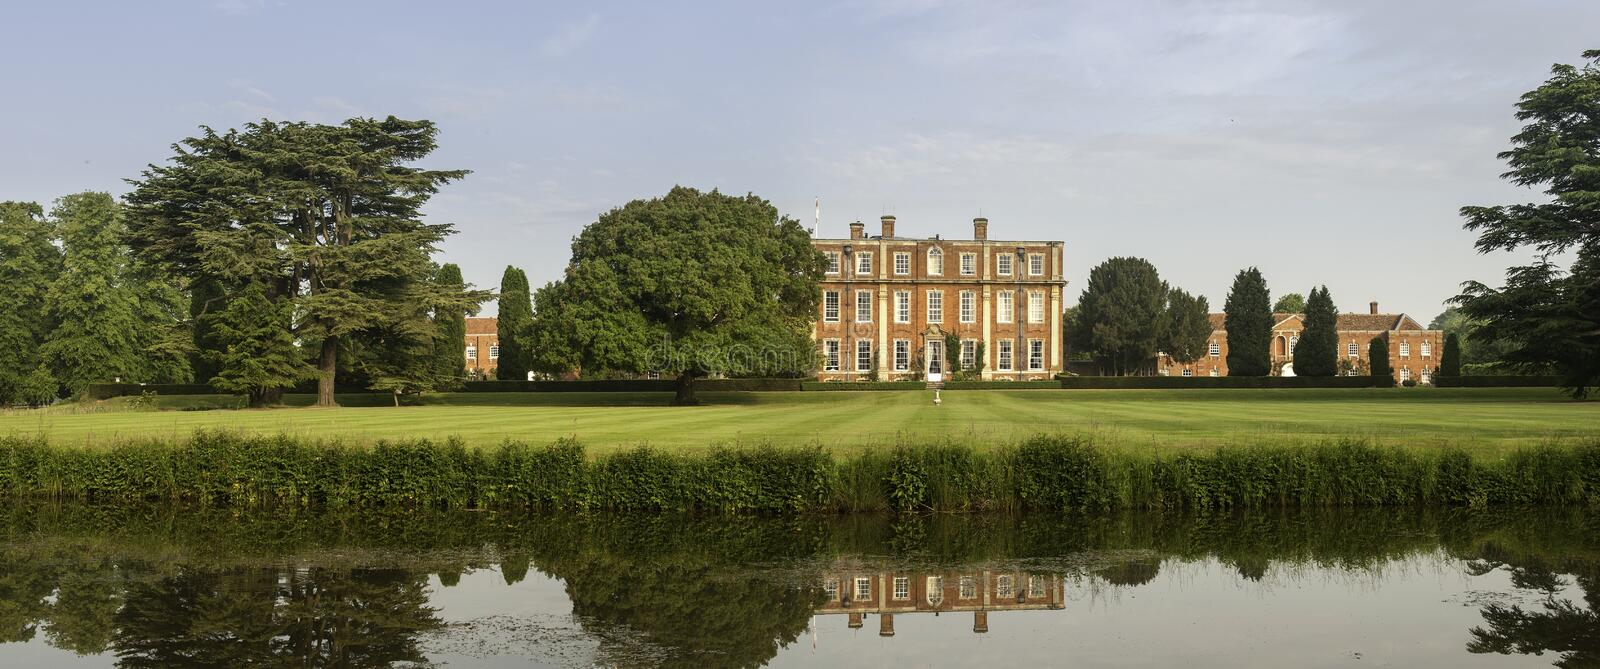 English country estate royalty free stock photography